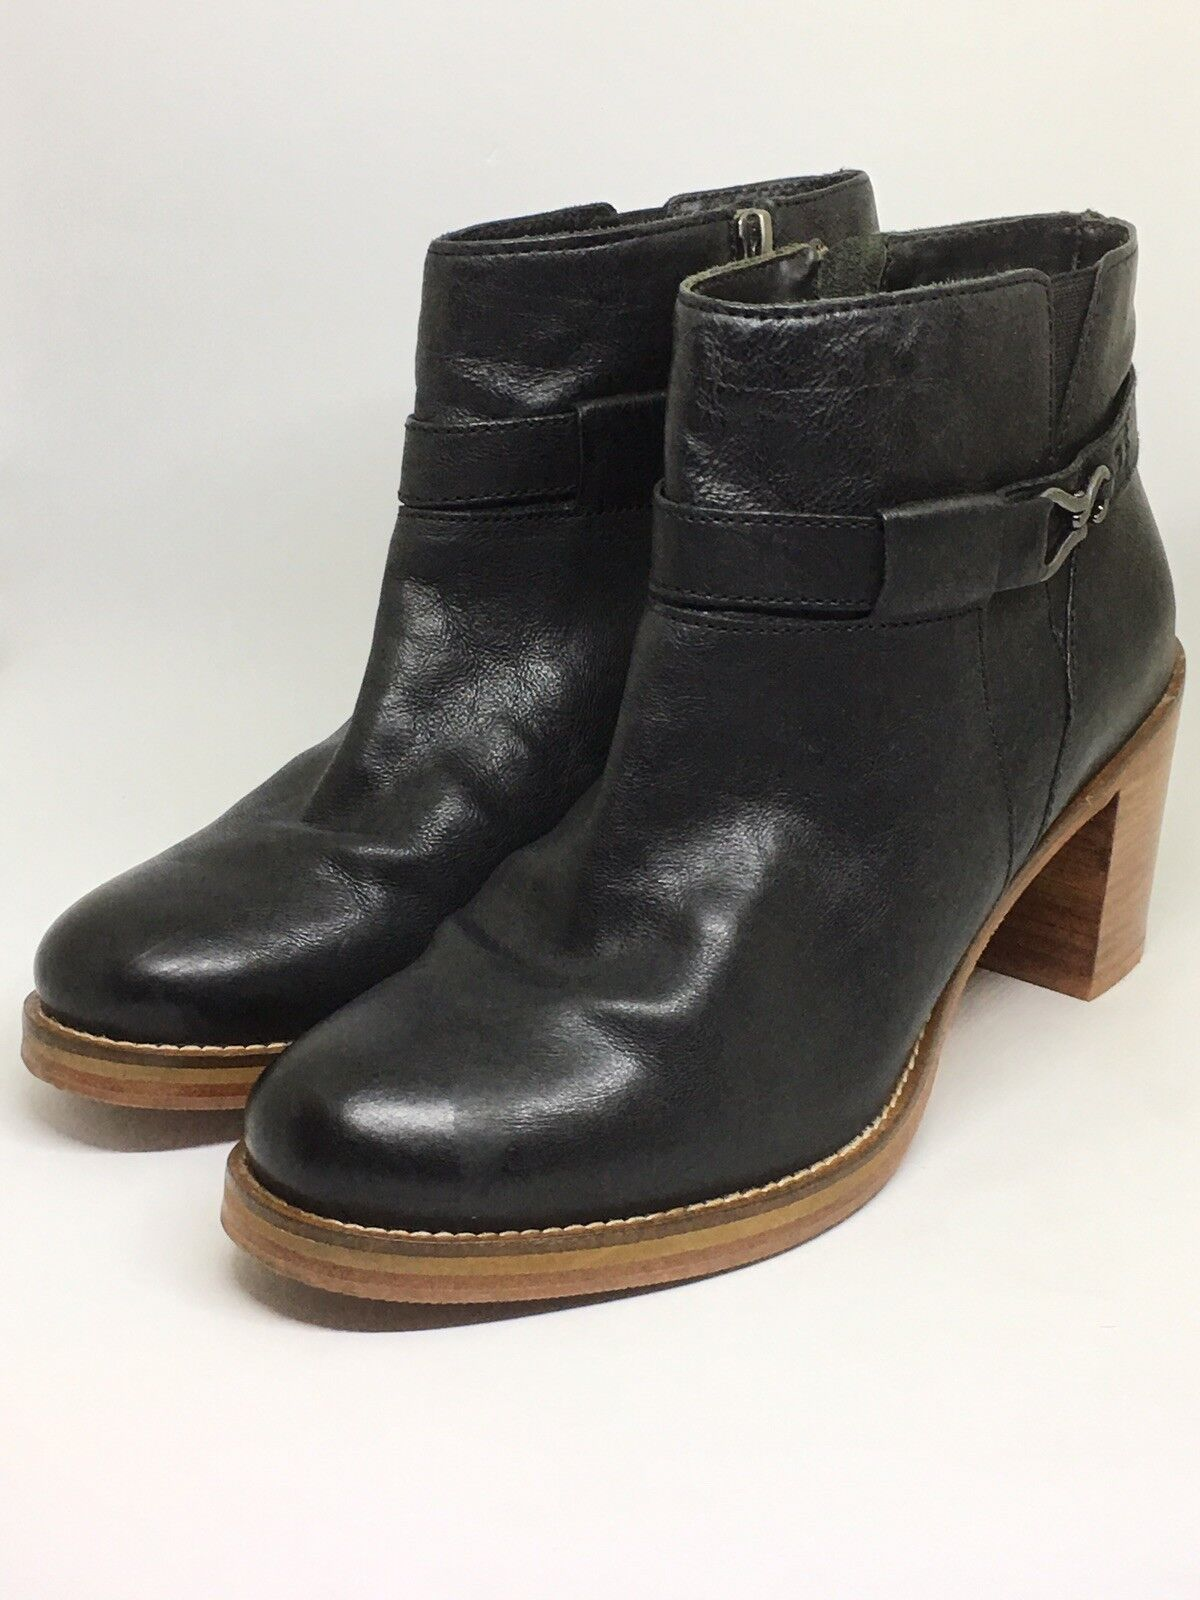 J. shoes Bayswater Women's Bootie UK Size 7, US 9.5